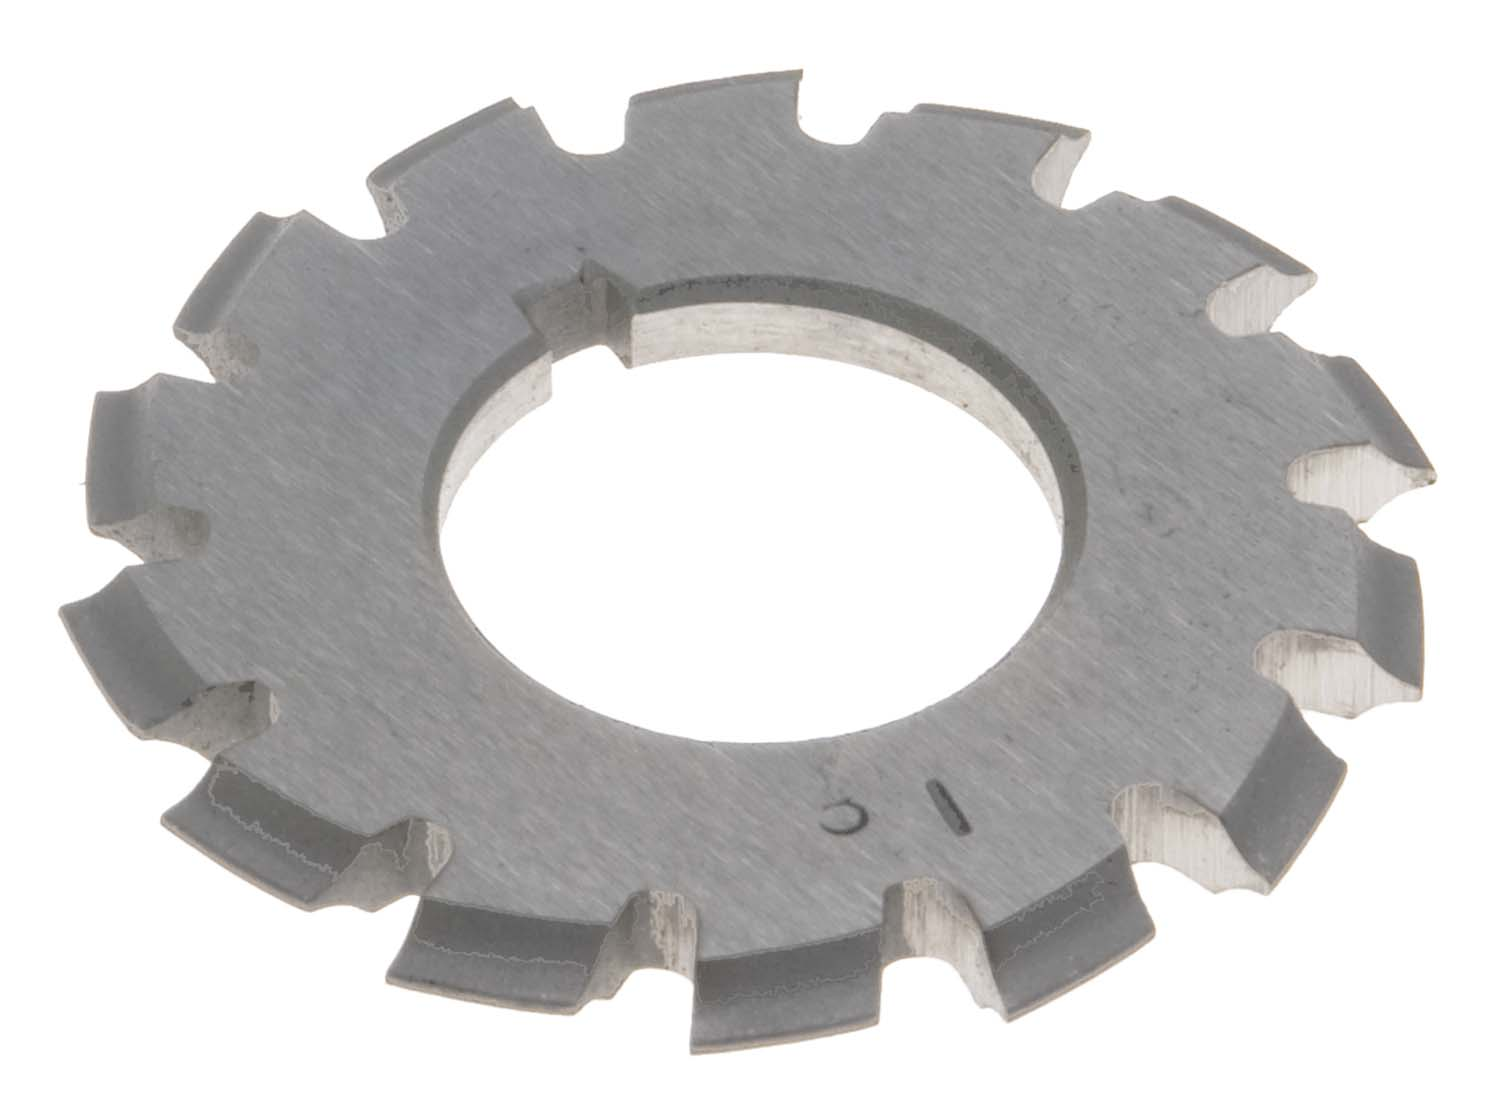 30 Diametral Pitch # 2   Involute Gear Cutter - 7/8 ID - 14-1/2 Degree Pressure Angle